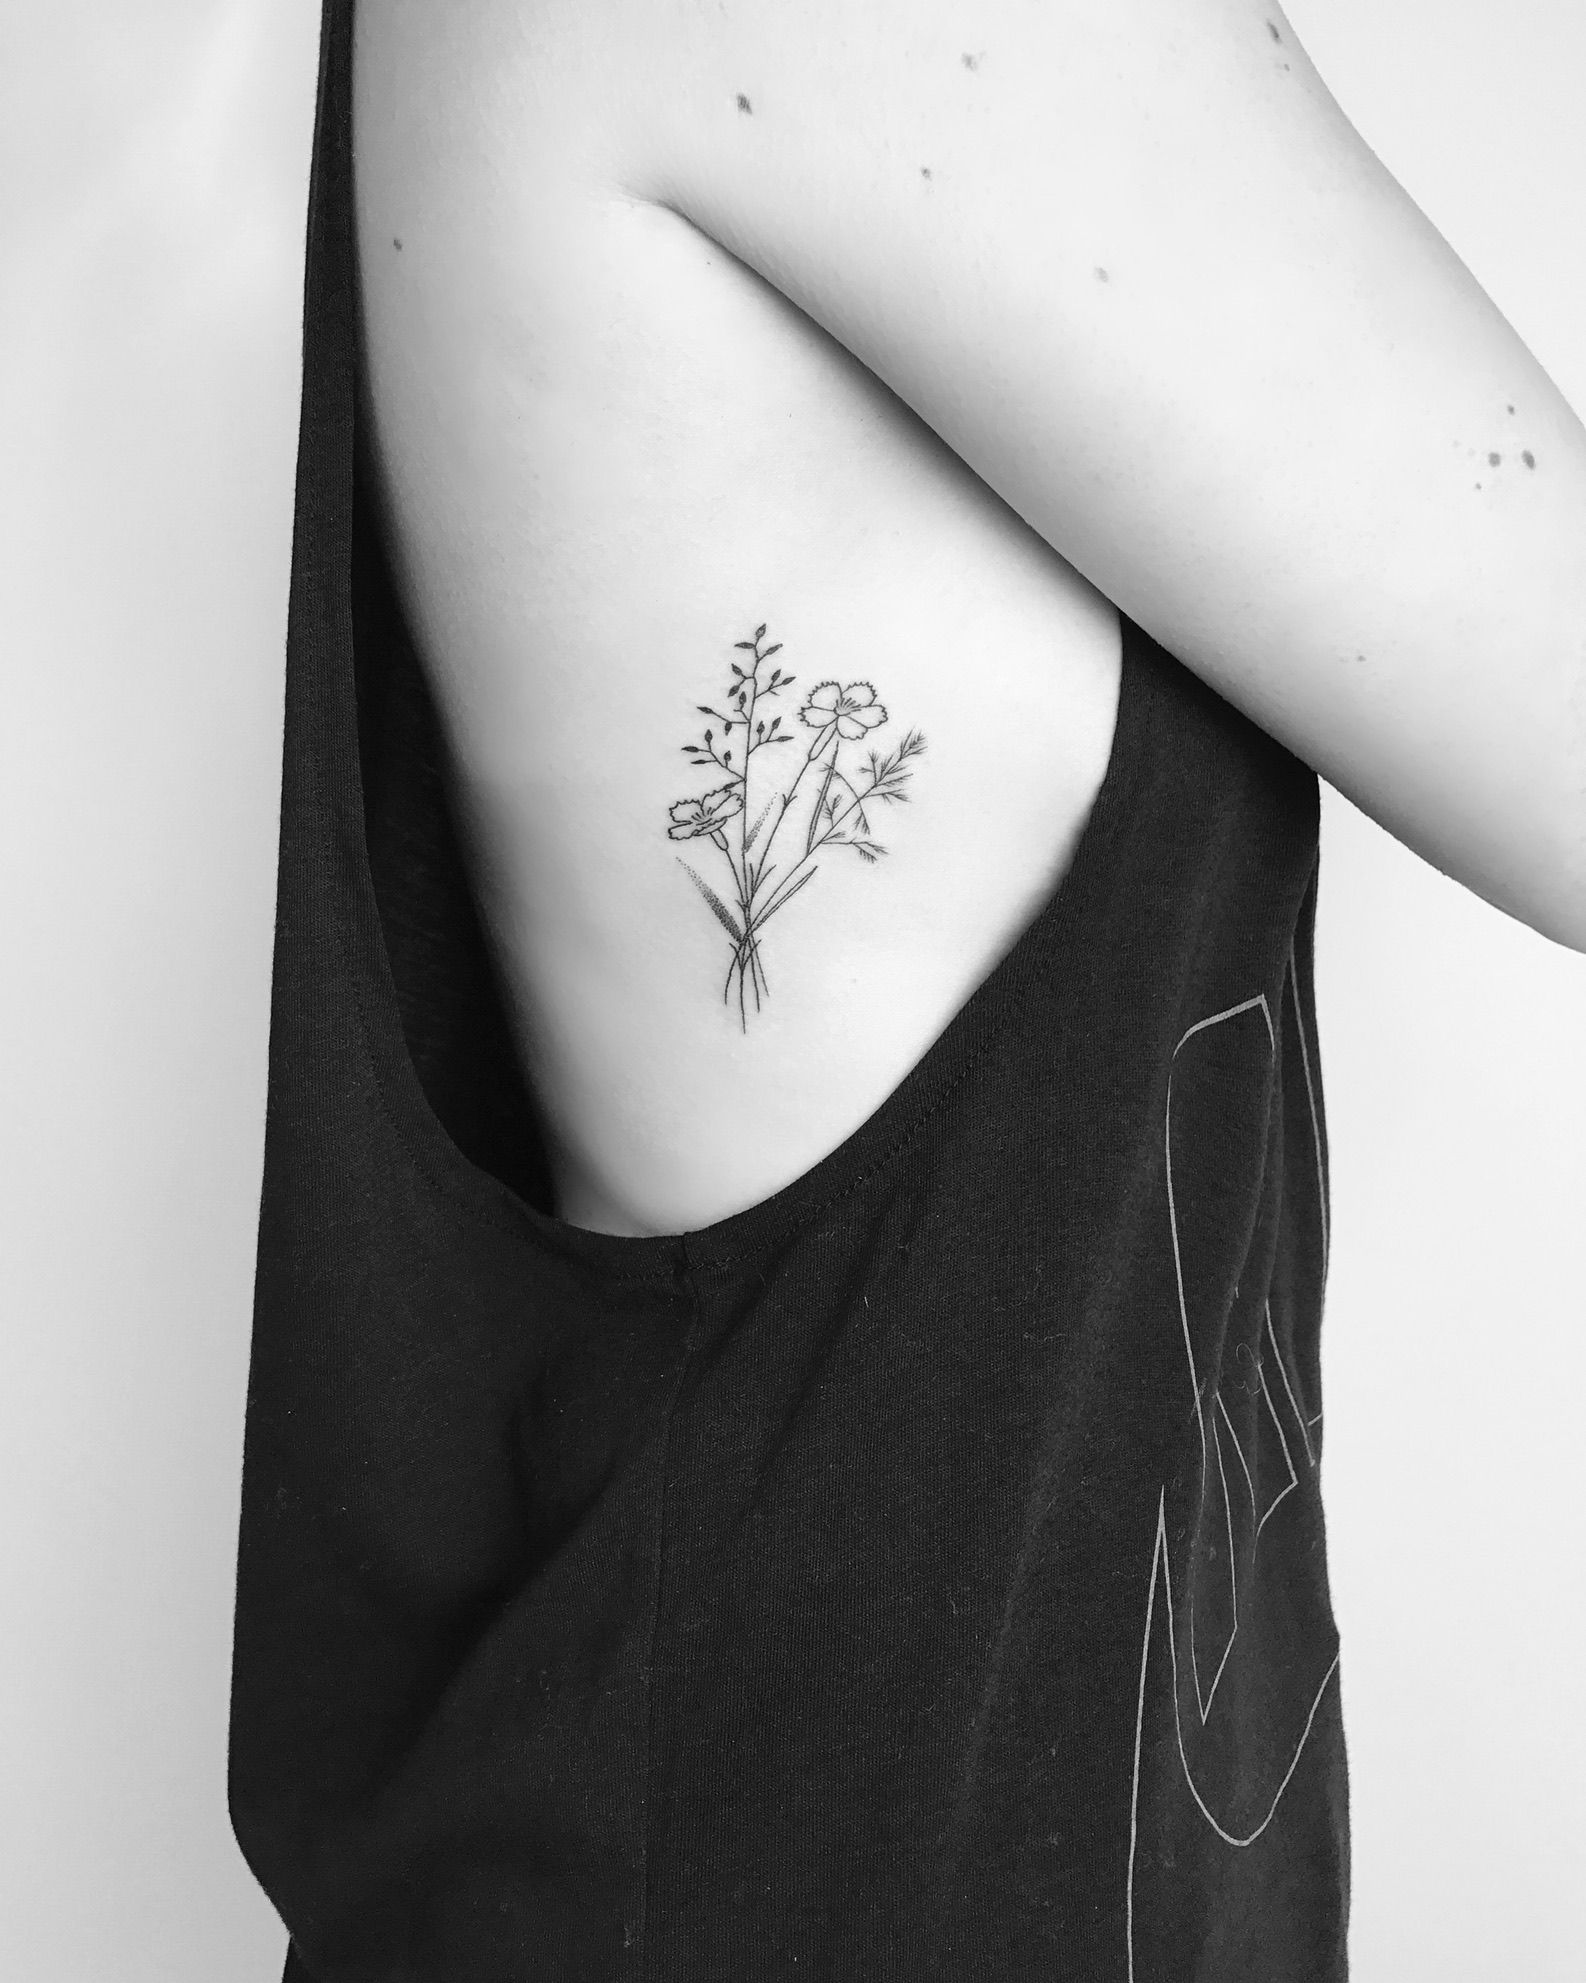 Small Minimalist Wildflower Tattoo With Fine Black Lines And